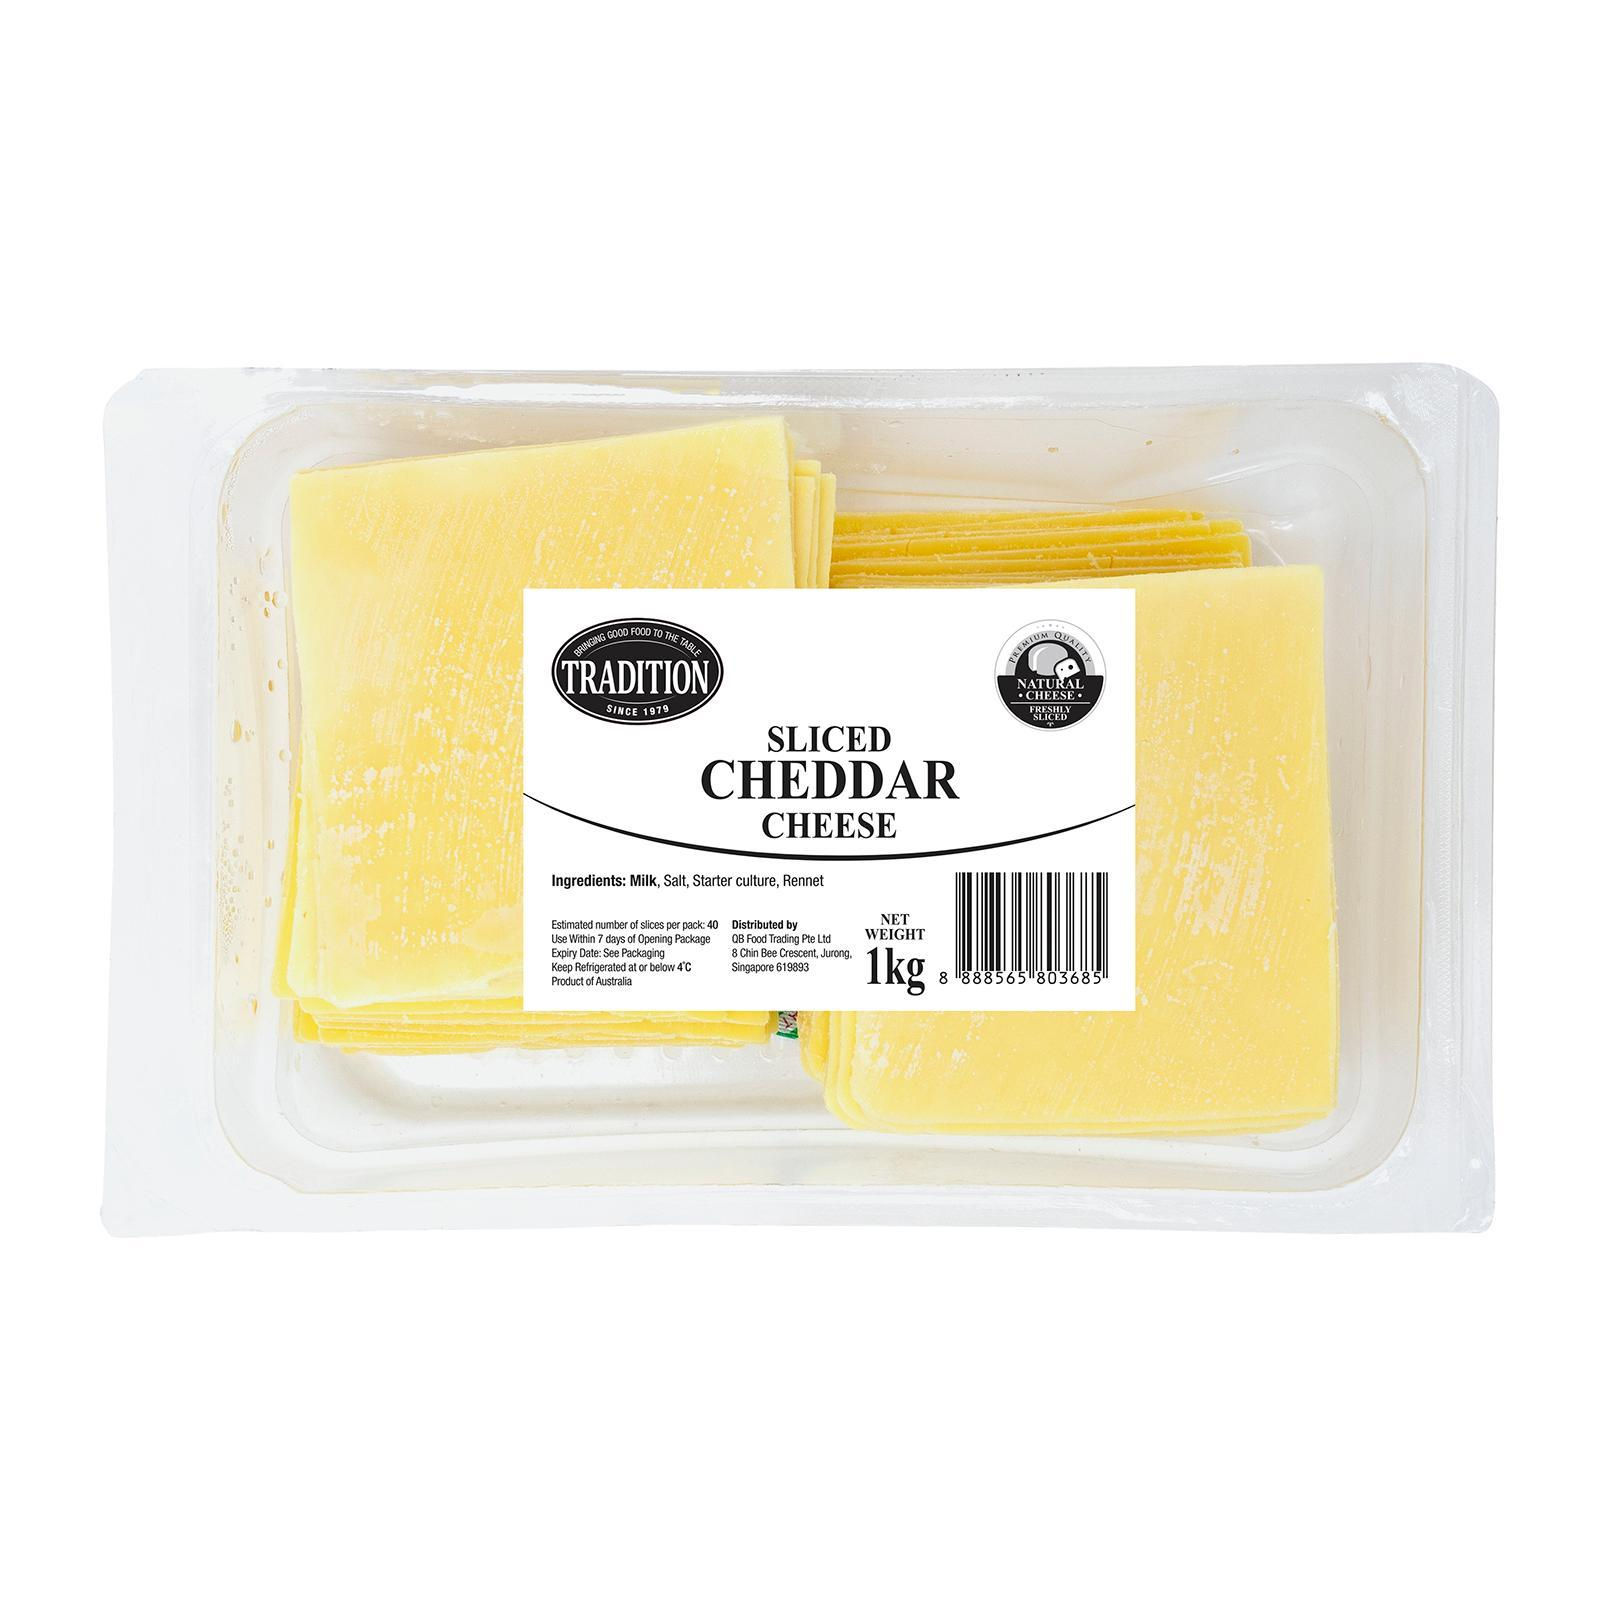 Tradition Sliced Cheddar Cheese Bulk Pack